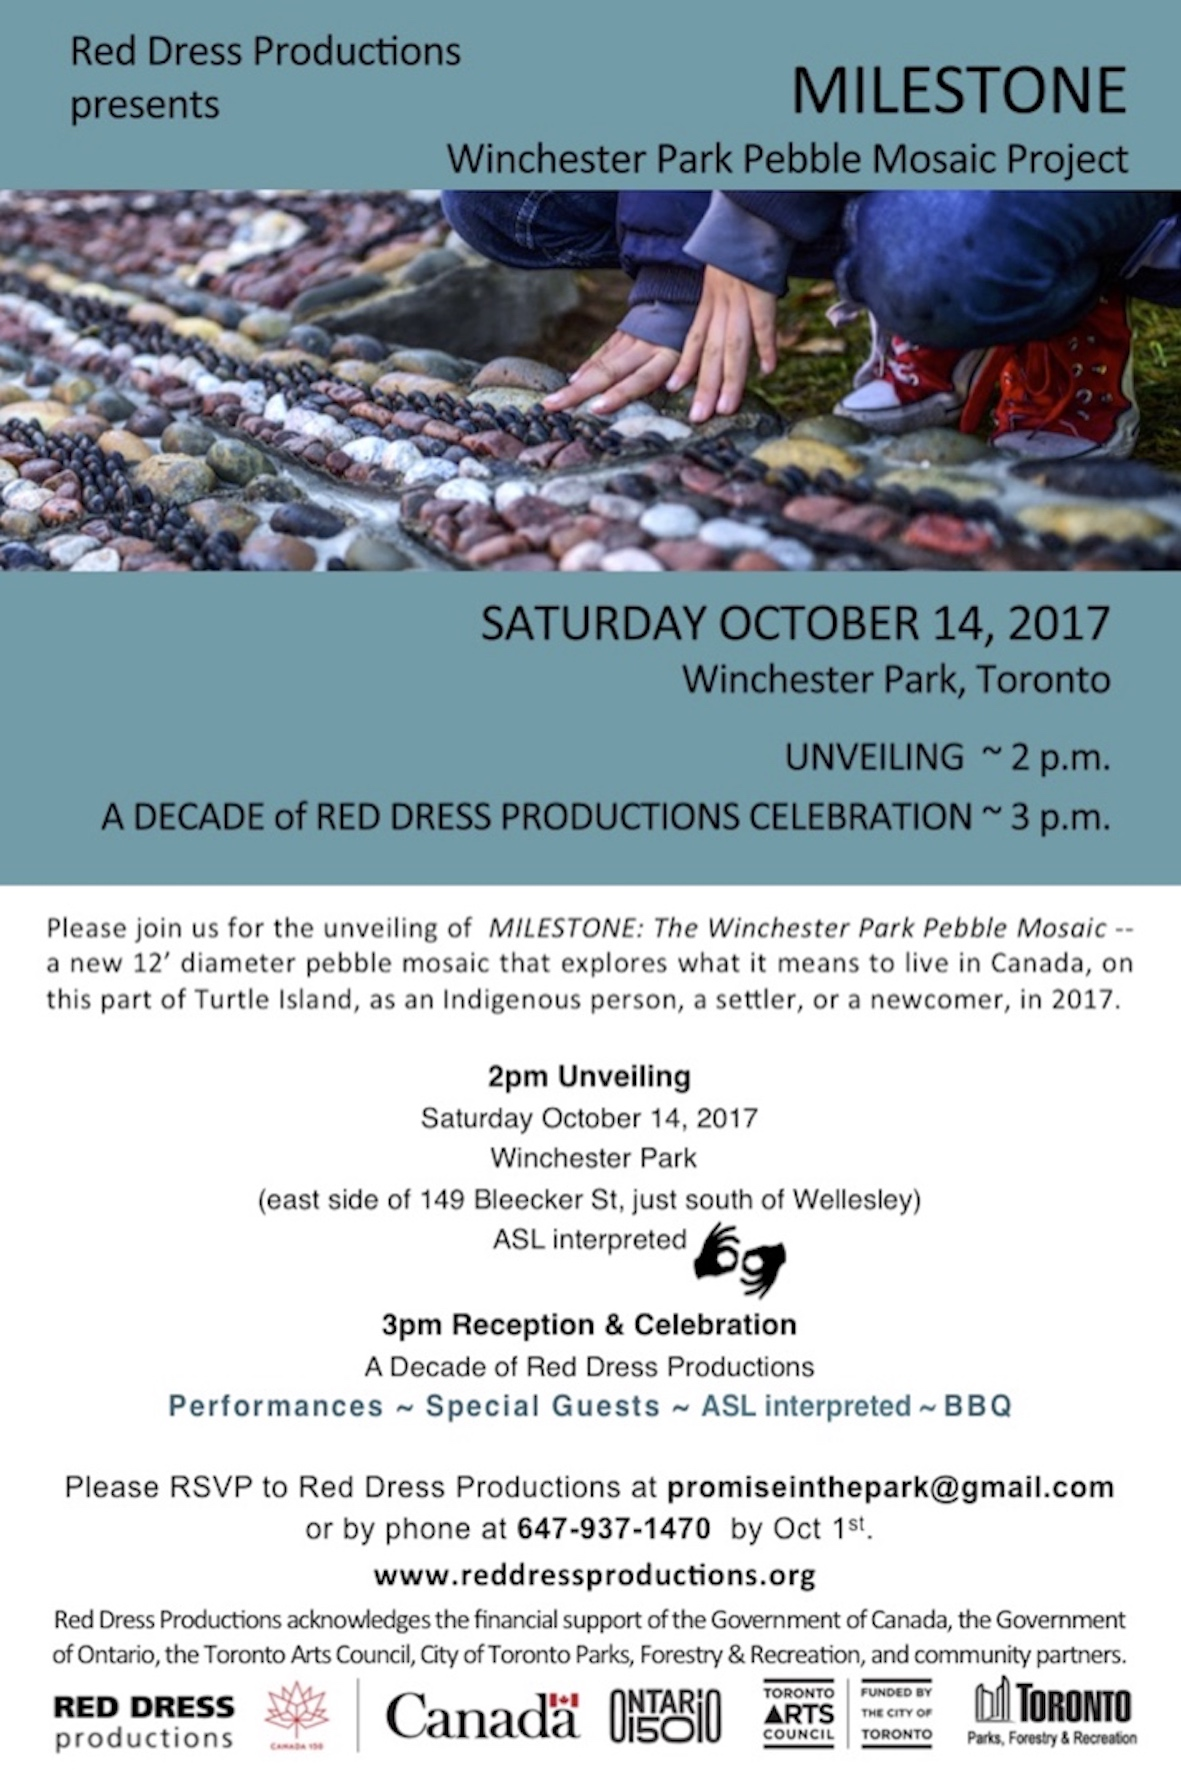 "This is a postcard invitation: The image is of hands touching a pebble mosaic. Above the image read the words ""Red Dress Productions presents ""Milestone: Winchester Park Pebble Mosaic Project"" Below the image read the words ""Saturday October 14, 2017. Winchester Park, Toronto. Unveiling at 2 p.m. A Decade of Red Dress Productions Celebration at 3 p.m."